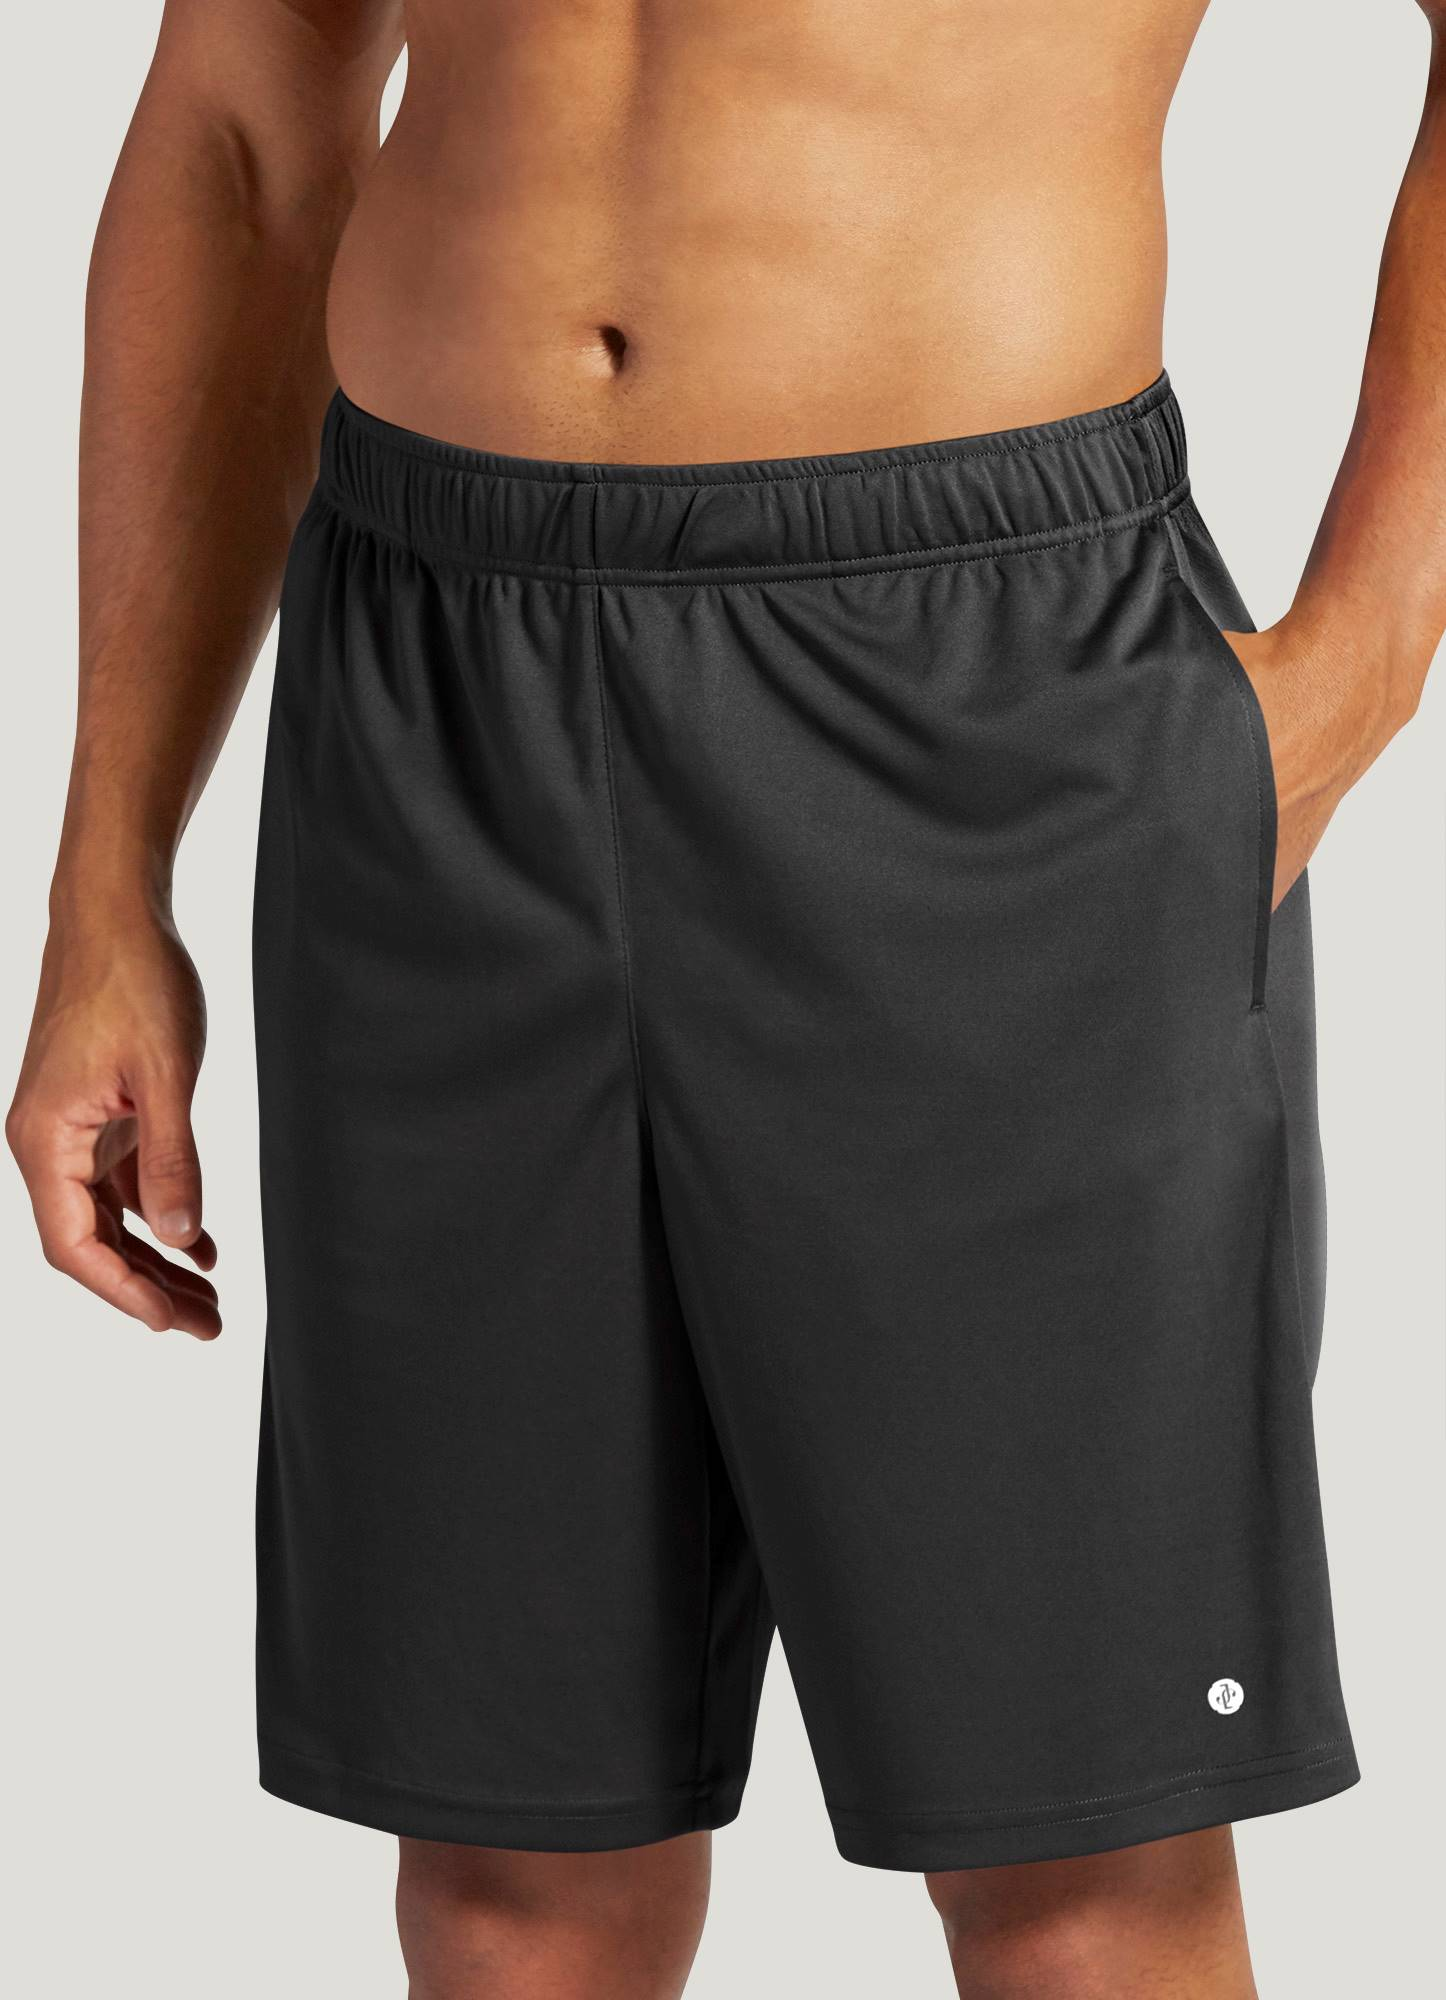 sneakers for cheap sports shoes great look Jockey Shorts for Men | Shorts for Men | Jockey